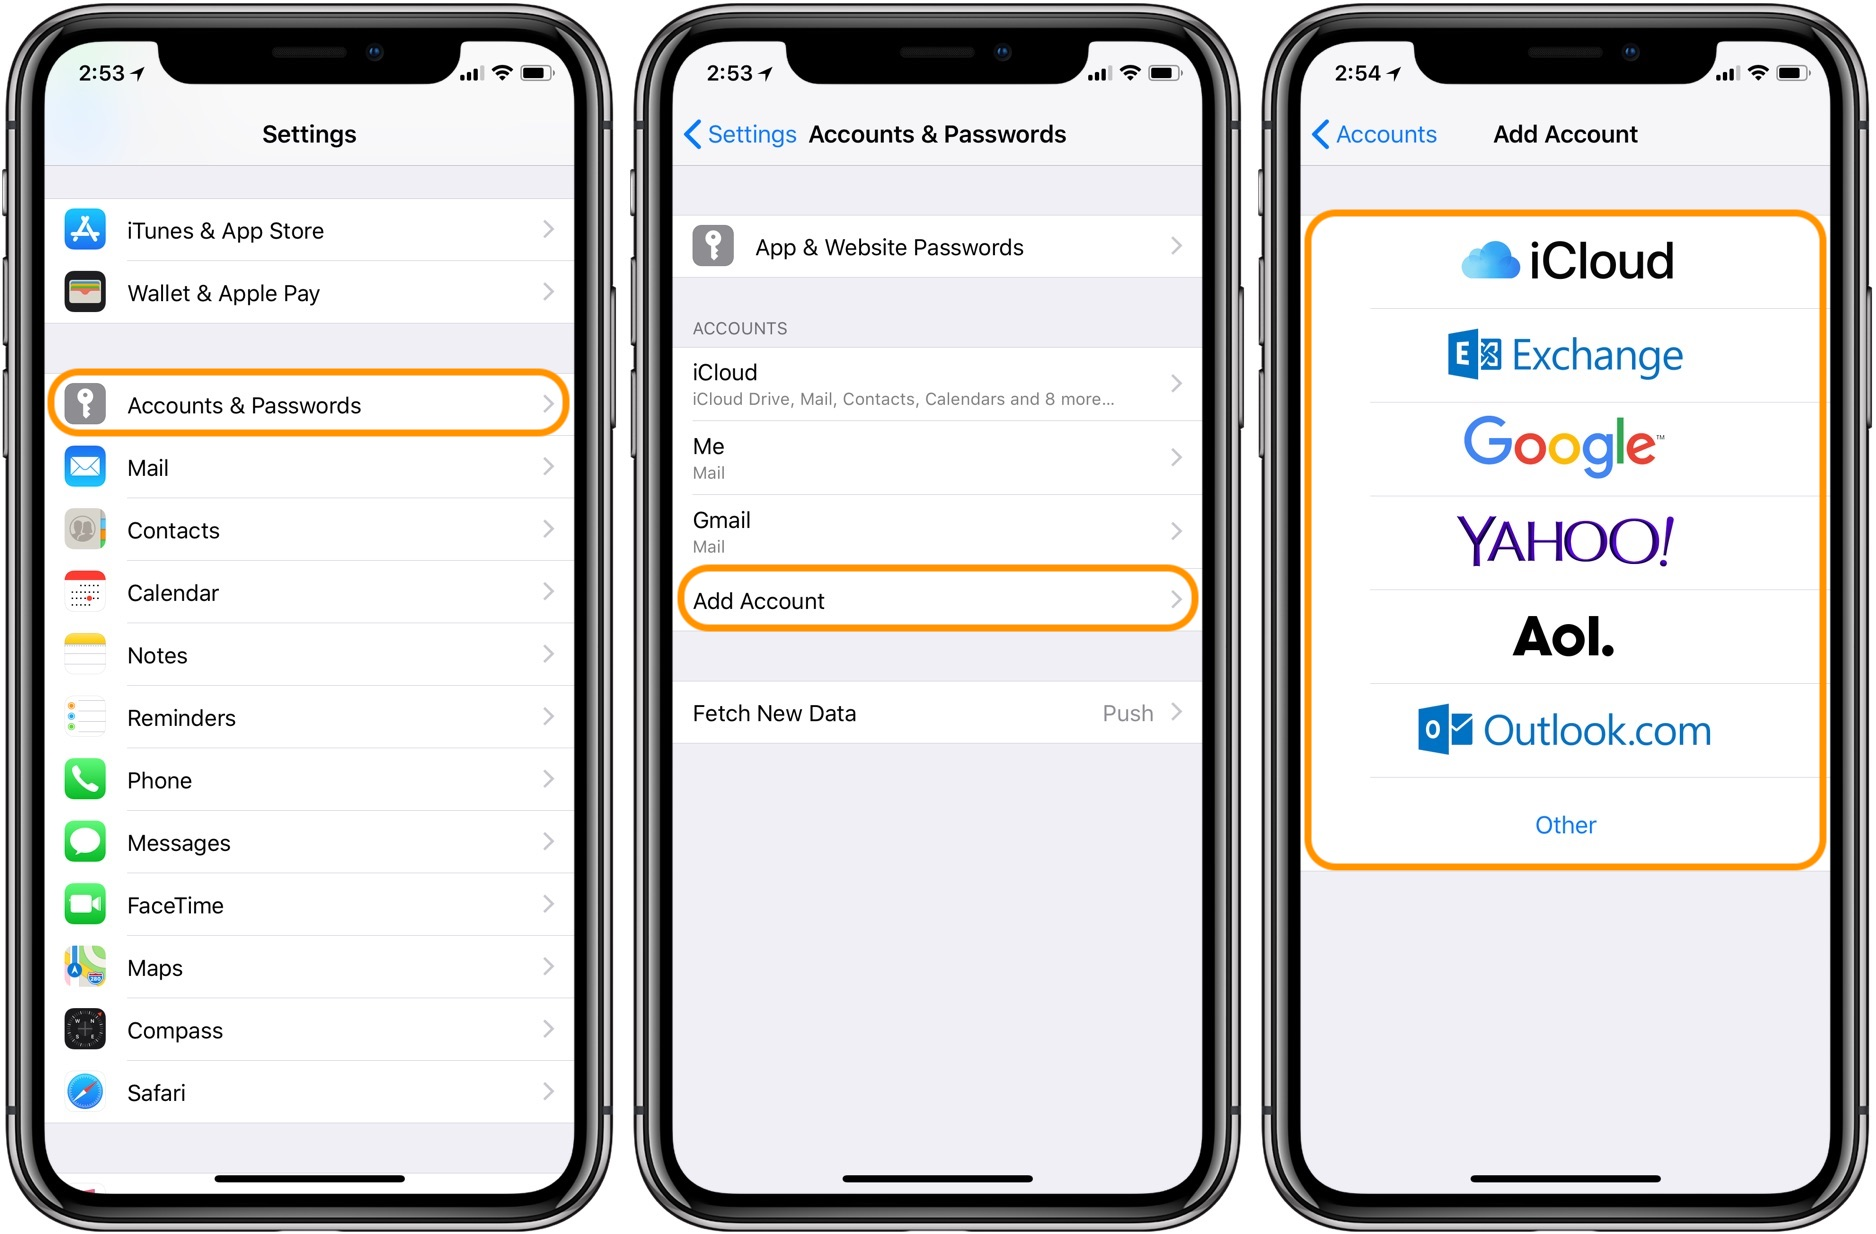 iphone how to add email 9to5mac